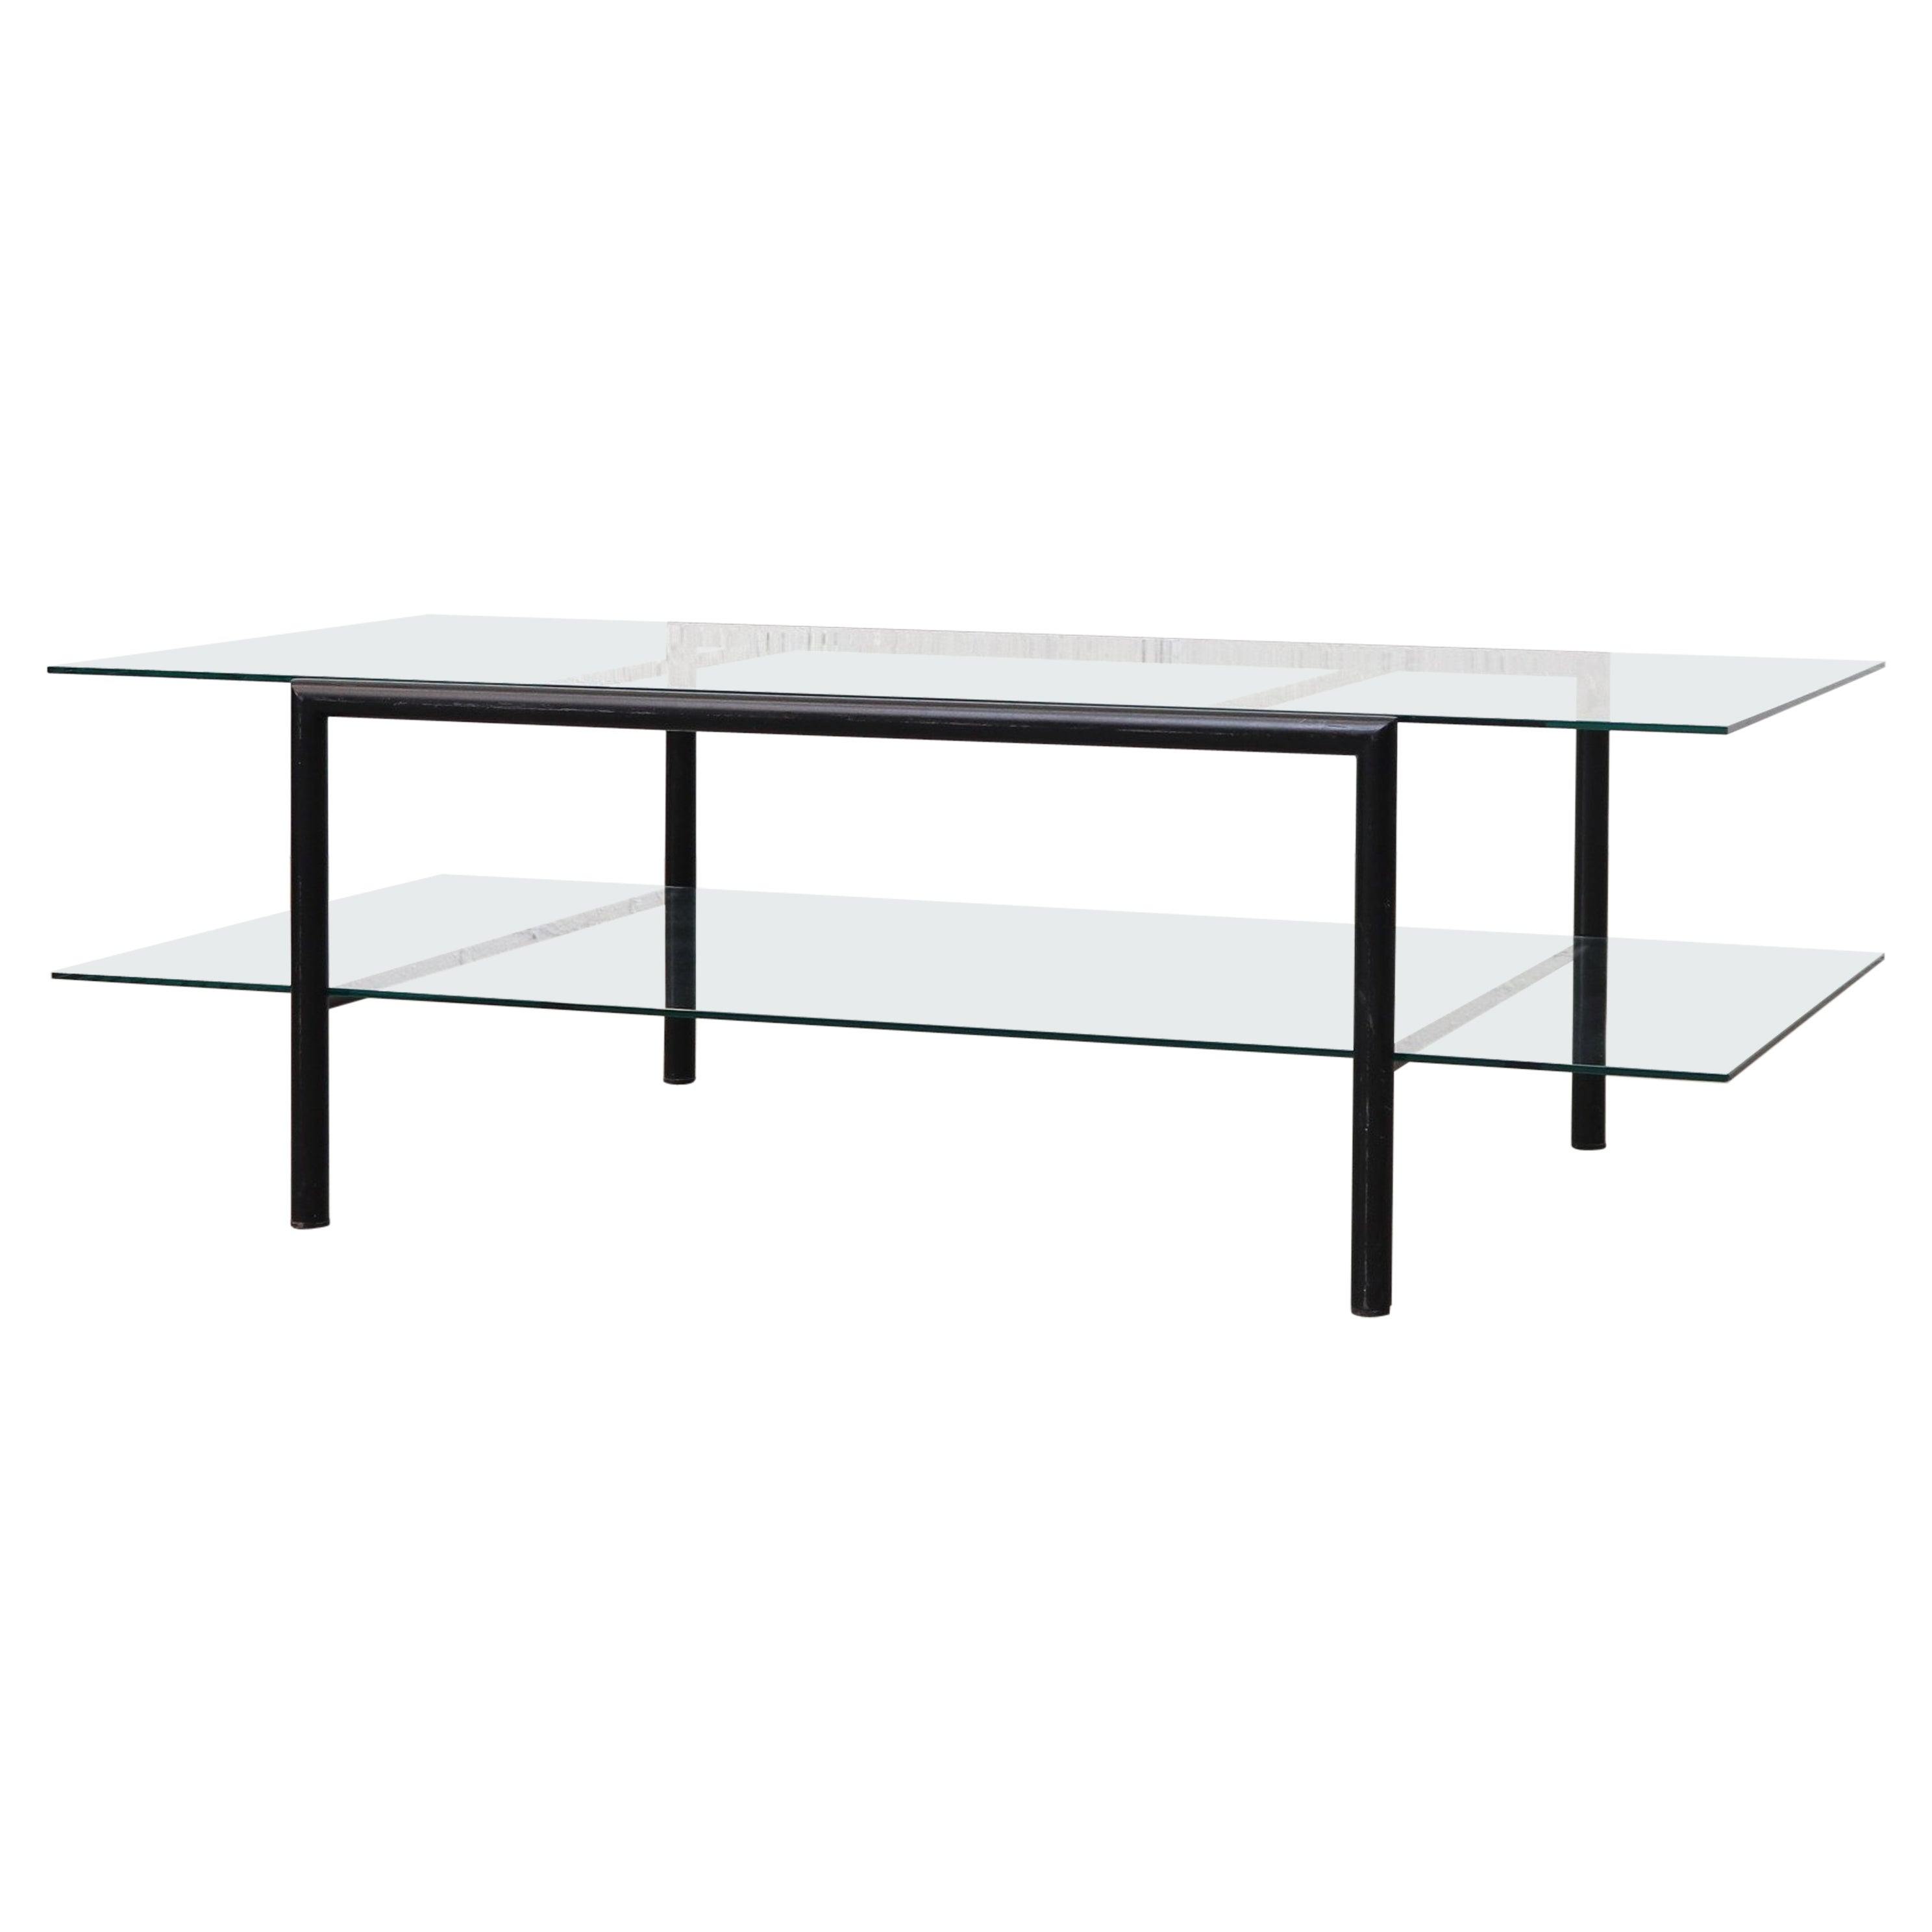 Martin Visser Style Two Tiered Glass Coffee Table With Black Metal